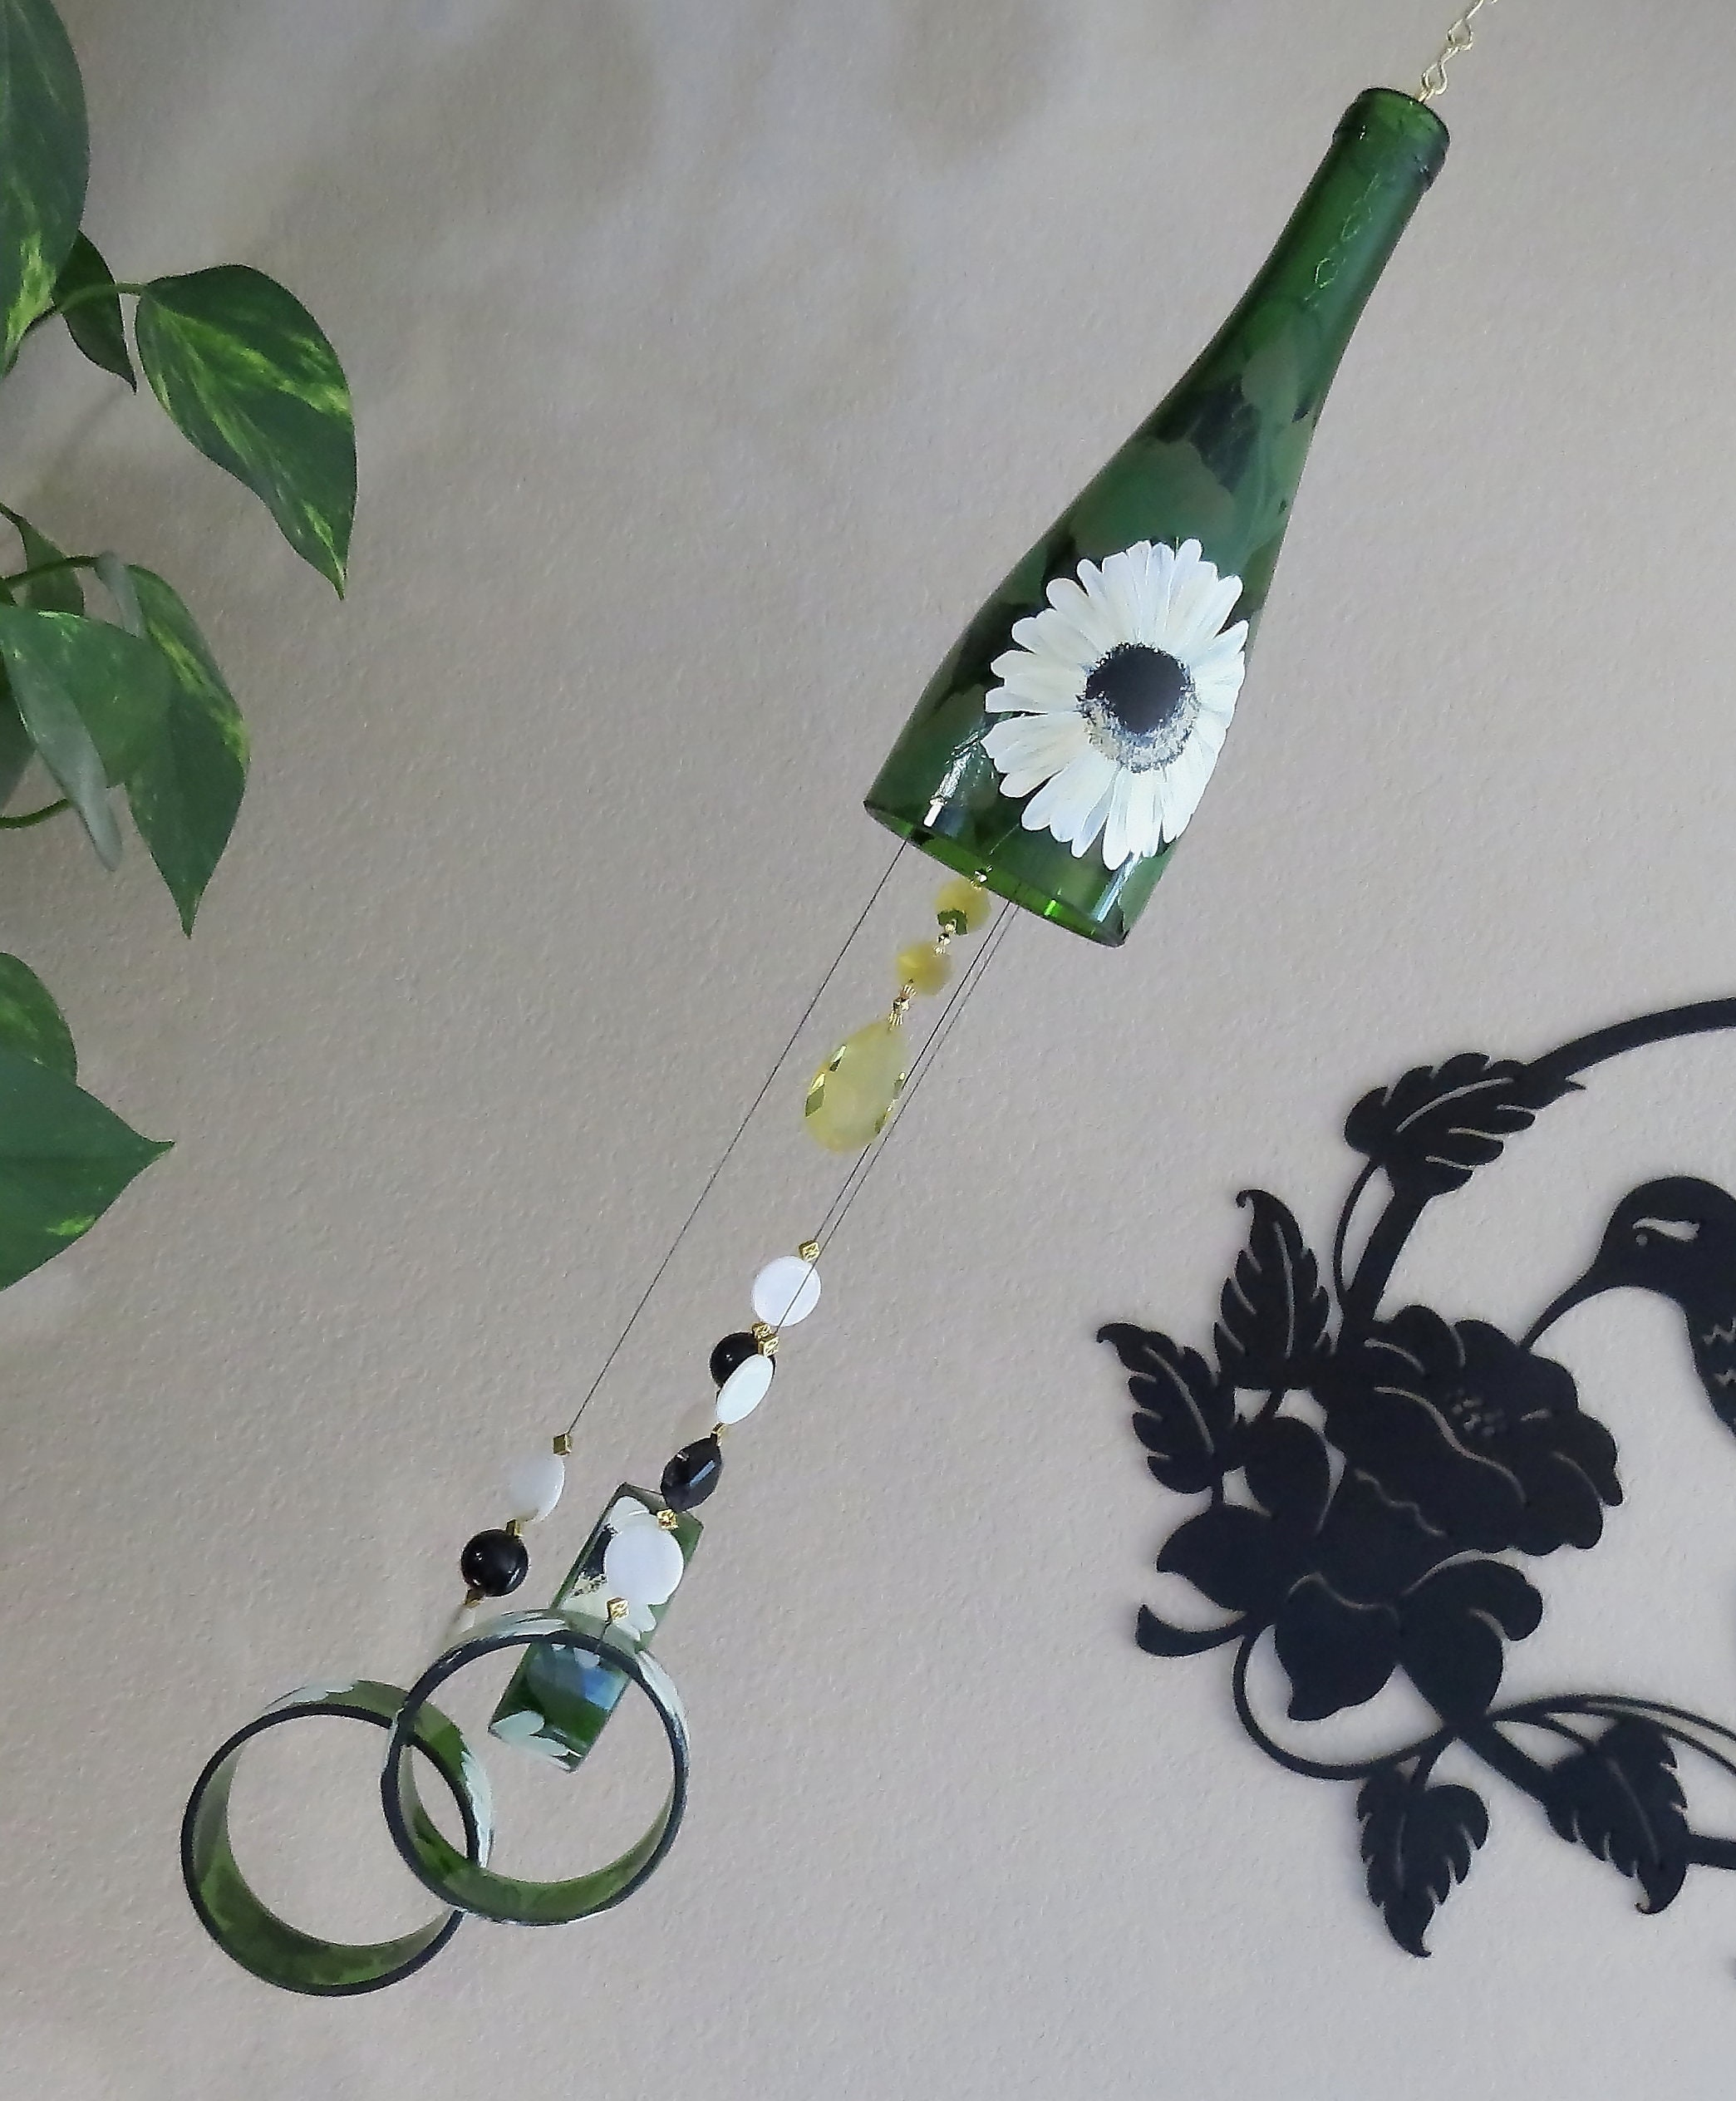 Merveilleux Wine Bottle Windchime, Green Glass Wind Chime, Colorful Daisies, Yard Art,  Patio Decor, Recycled Bottle Wind Chime, Hand Painted Windchime